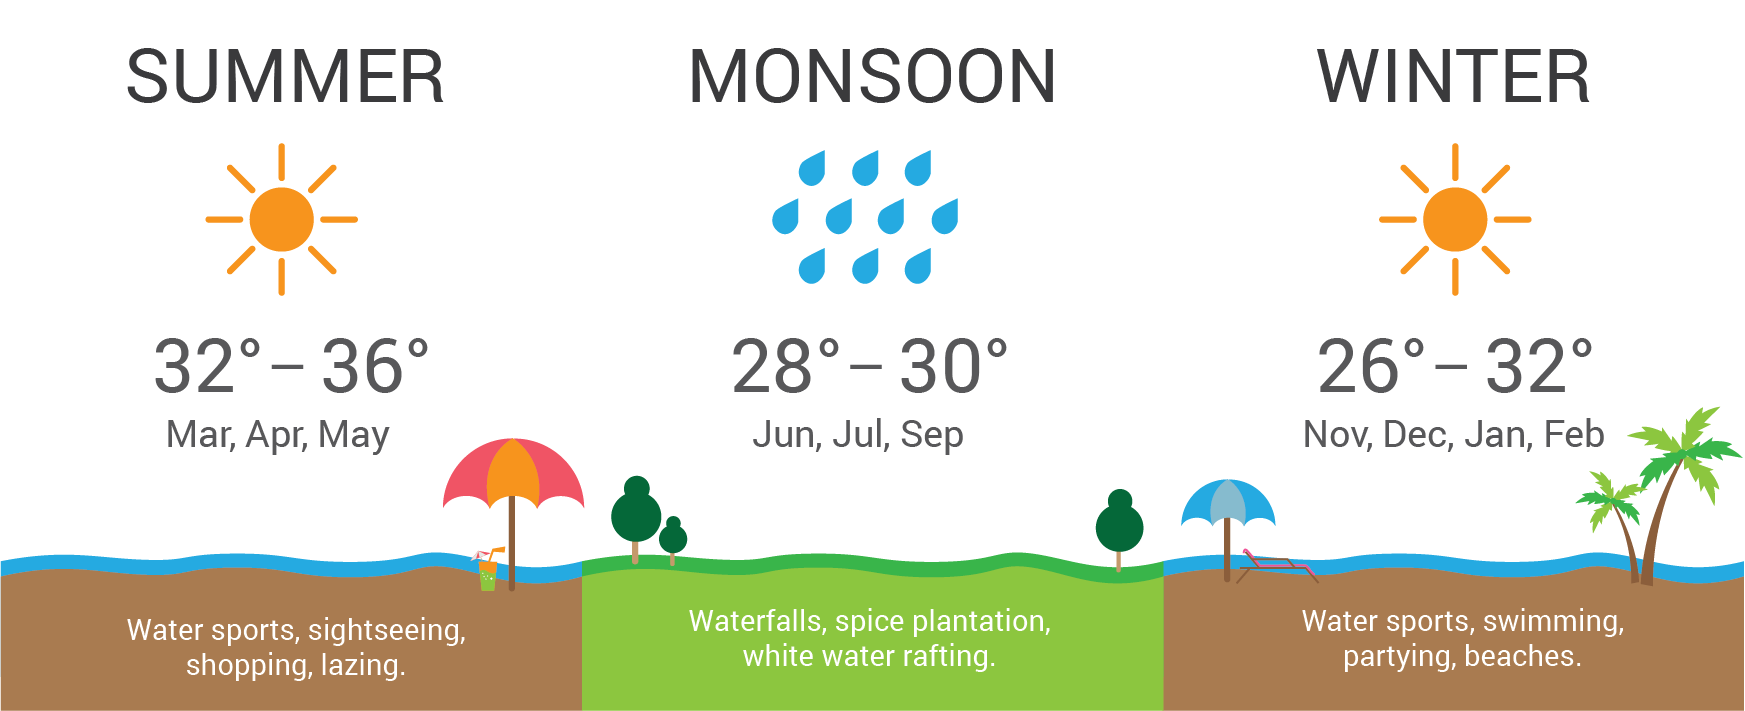 Infographic: Weather seasons and temperature in Goa